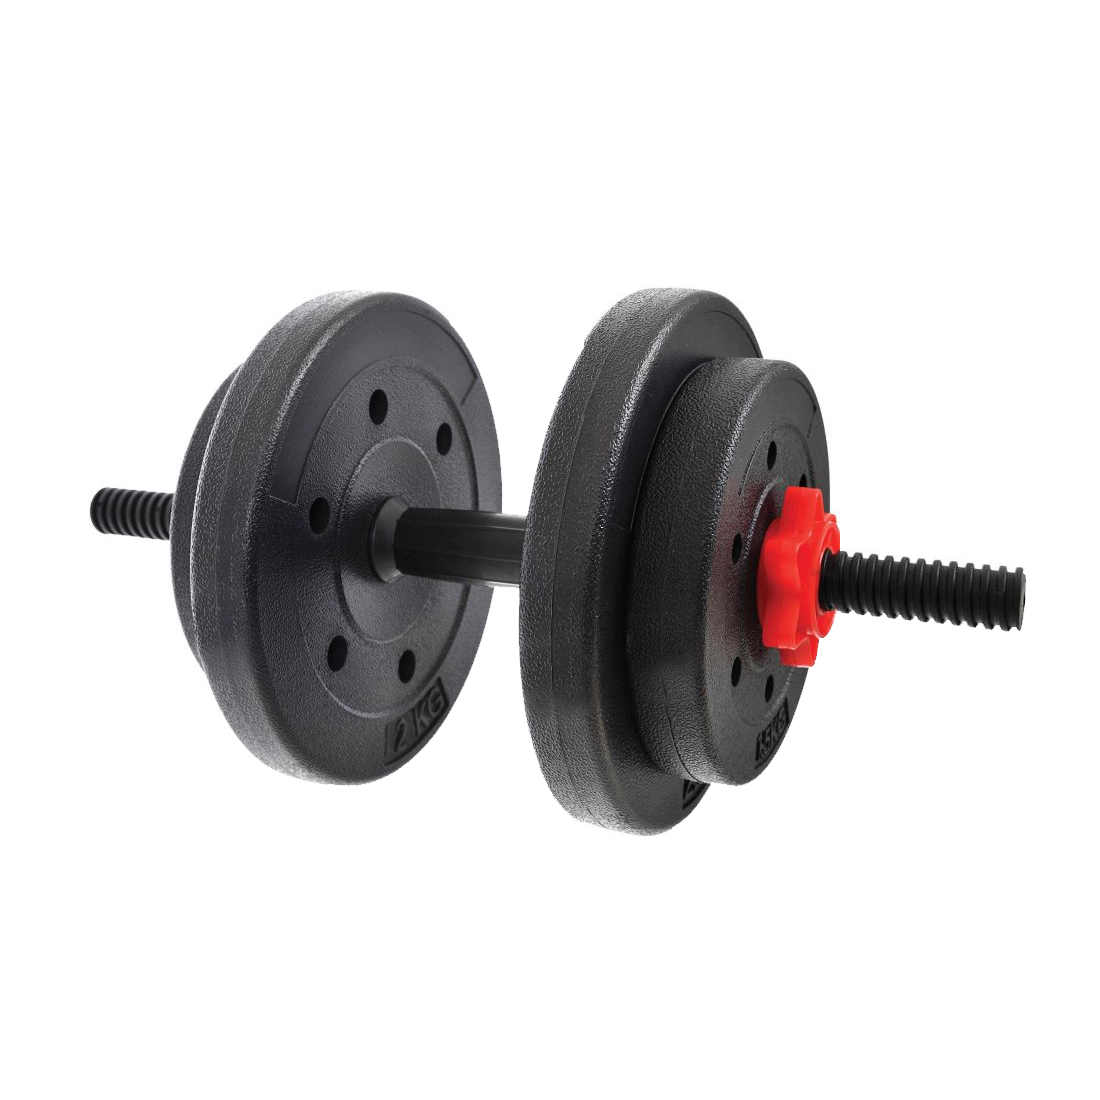 York 30kg Dumbbell Set: York Fitness Y Vinyl Dumbbell Set 15Kg